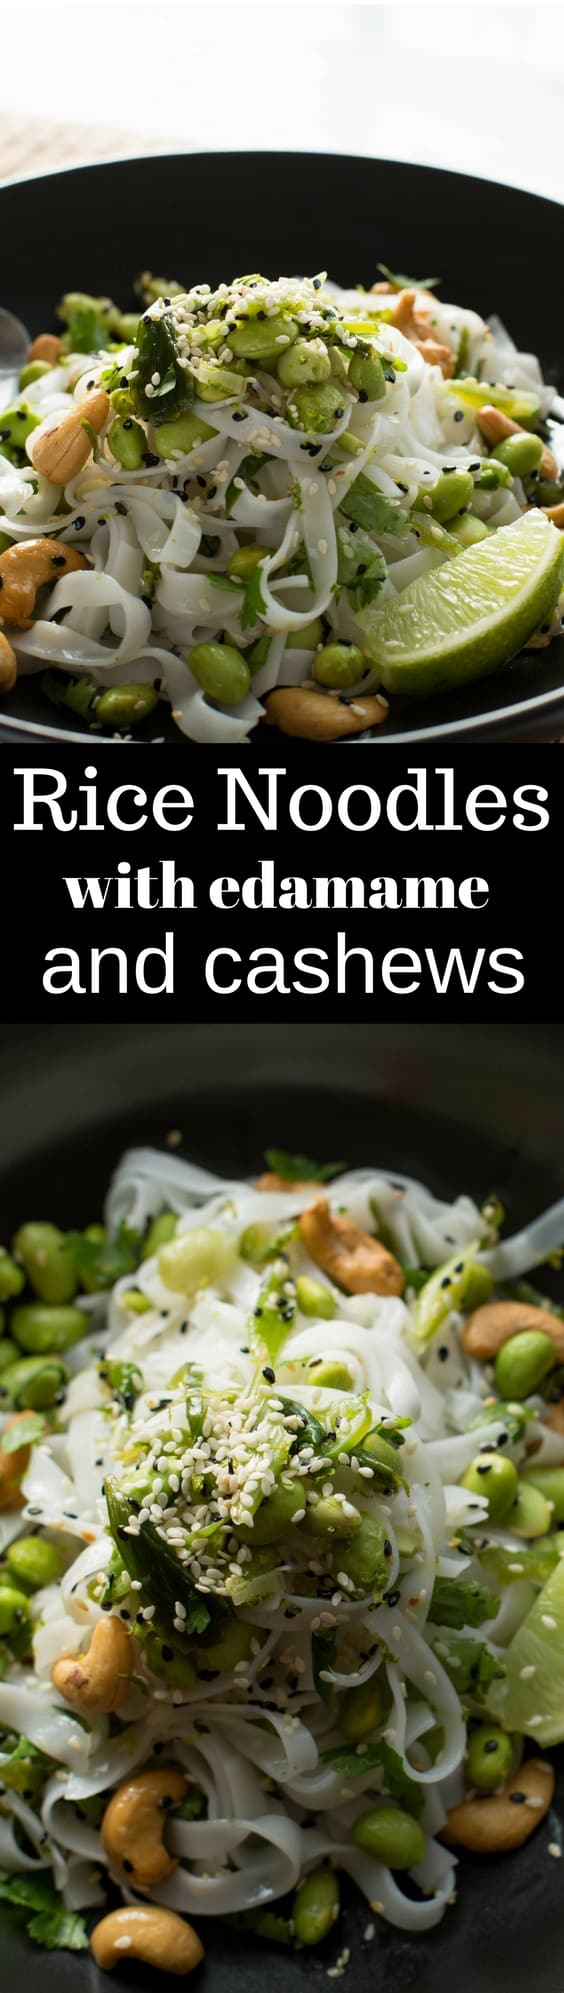 Simple meatless Mon meals are turning inward to to a greater extent than or less of my absolute favorite dishes Rice Noodles amongst Edamame together with Cashews